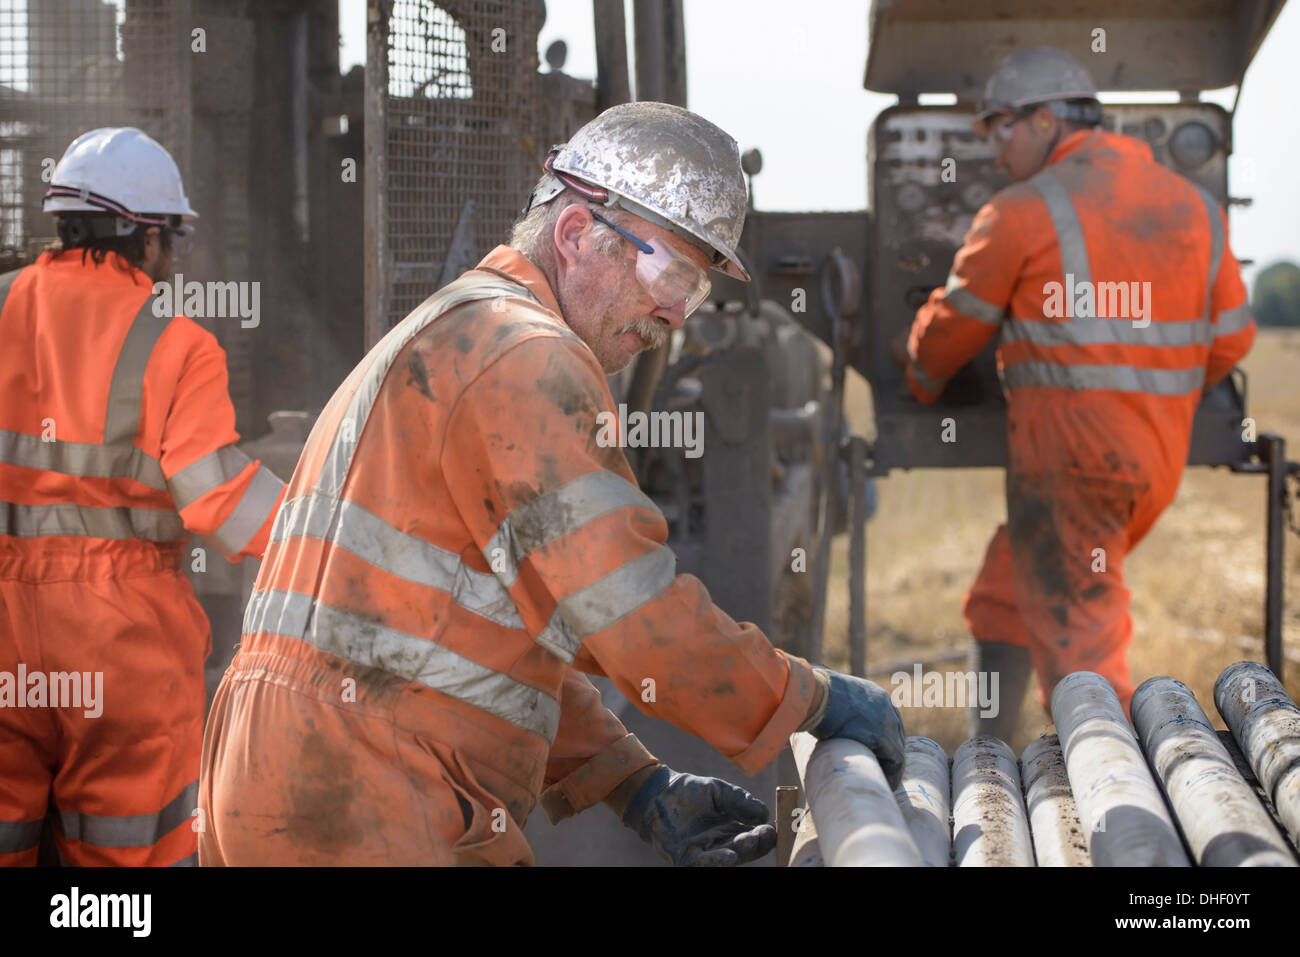 Workers in hard hats operating drilling rig - Stock Image